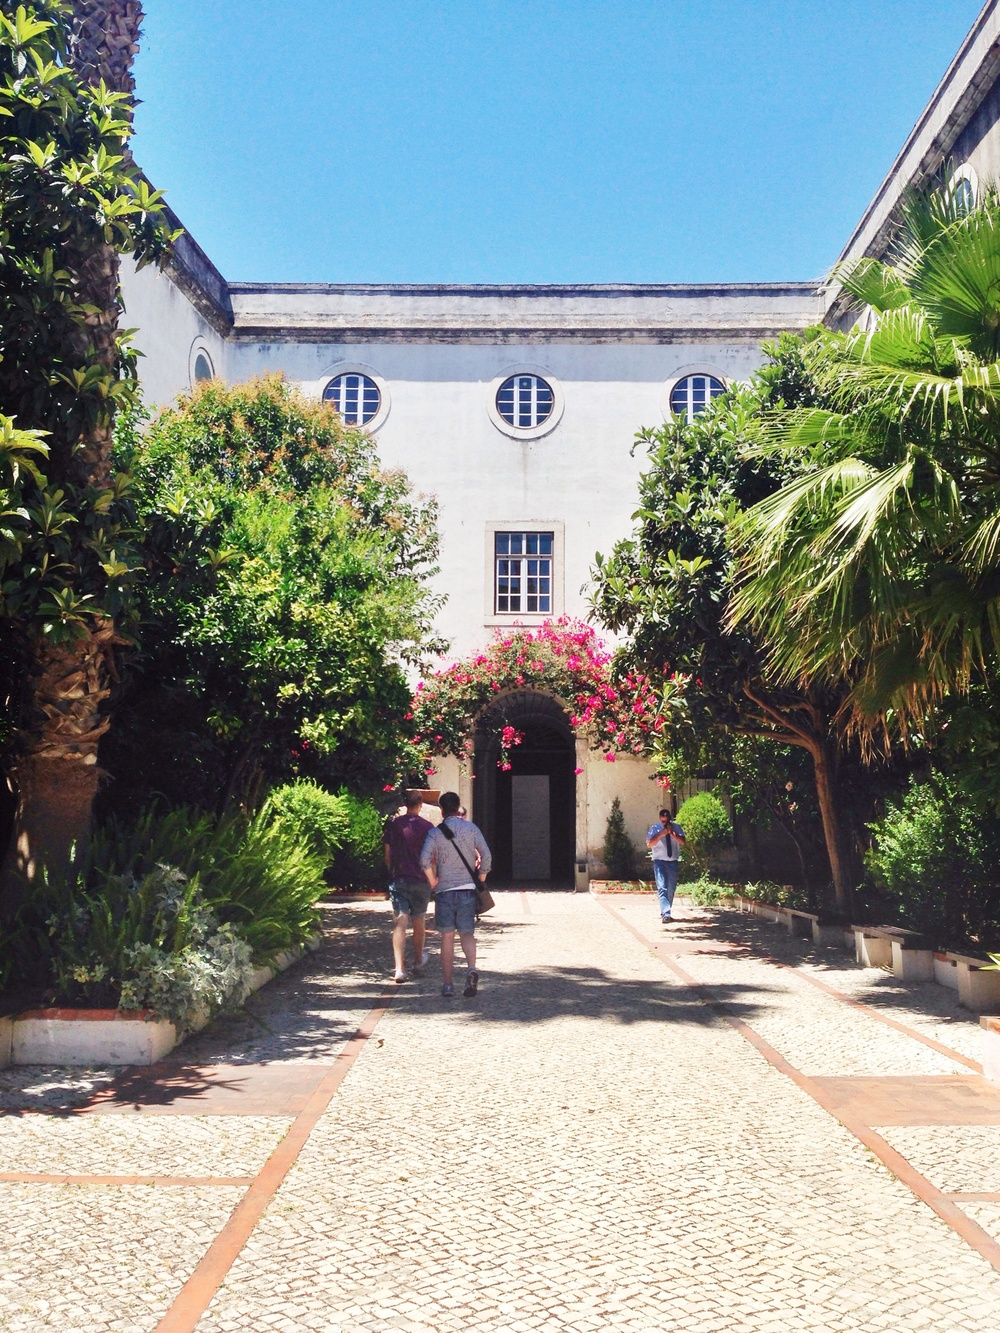 Entrace to Lisbon Tile Museum